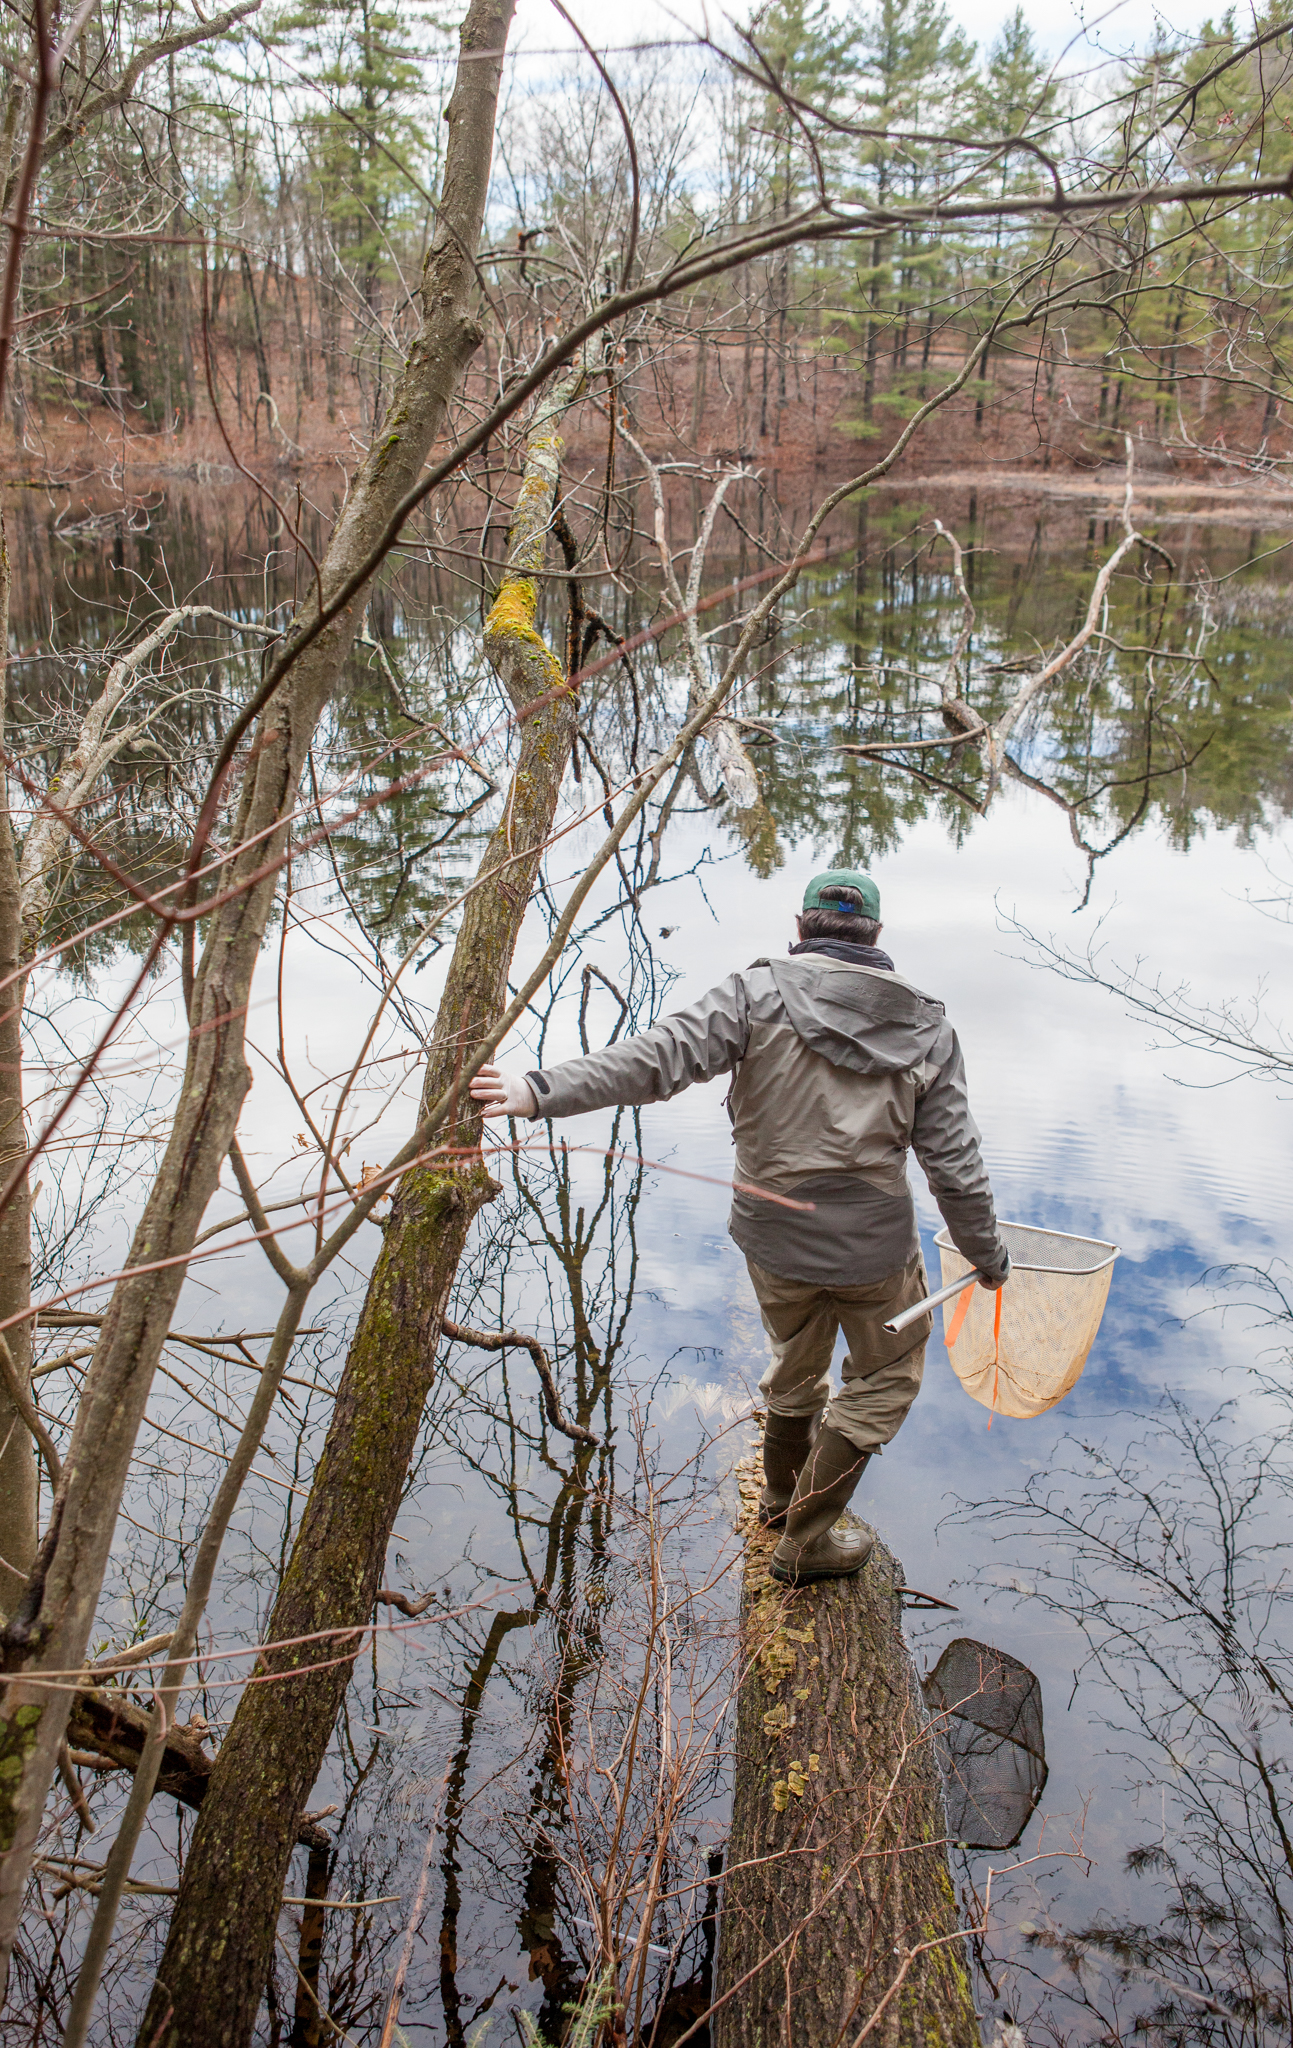 Net in hand, Grant ventures out on a fallen tree to try to capture a newt in this roadside pond in western Massachusetts. He says there could be hundreds or thousands of newts living in the pond. Photograph by Geoffrey Giller